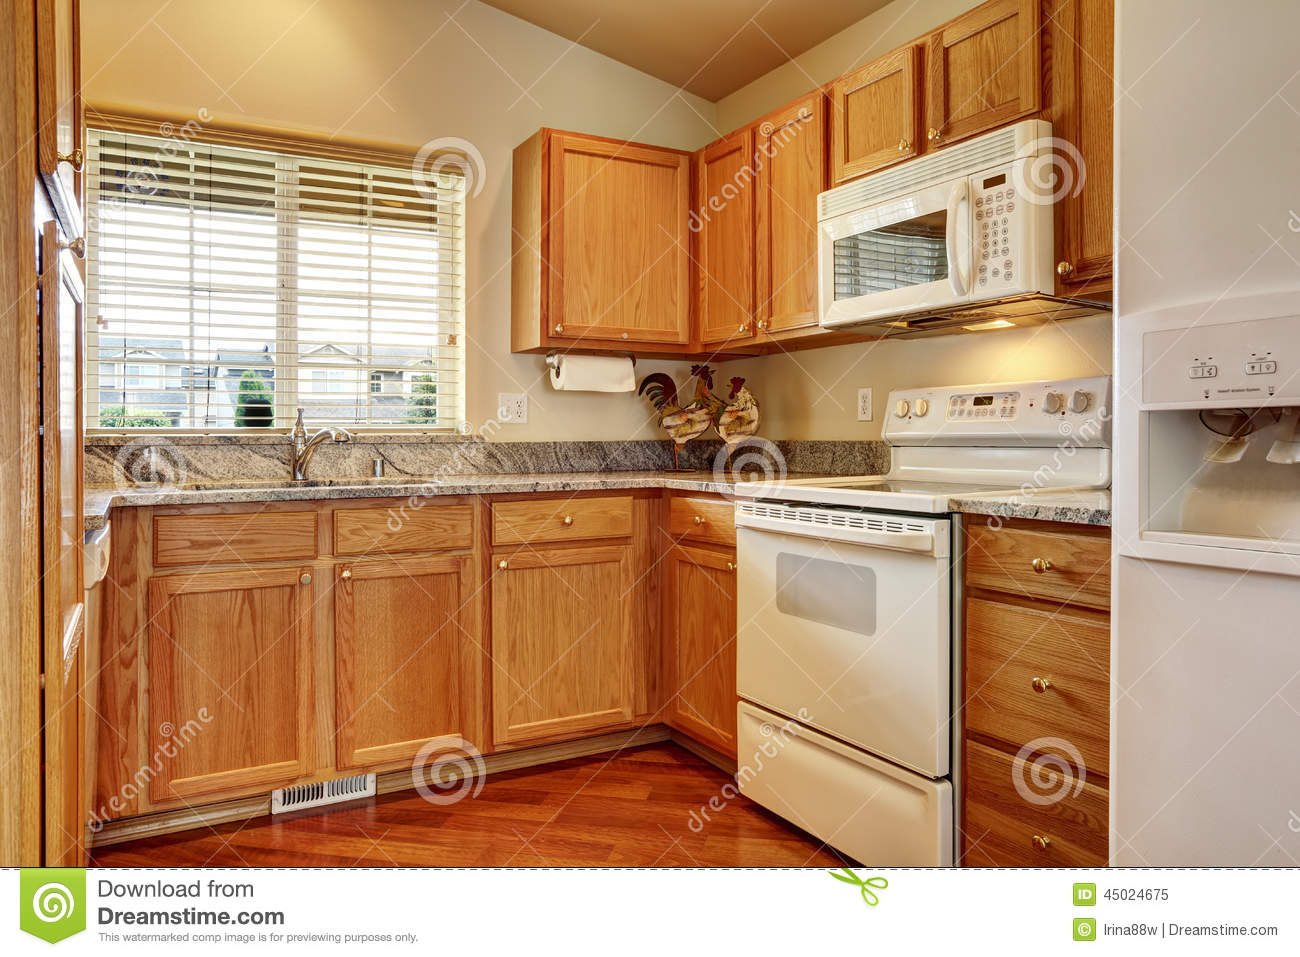 Small kitchen area with white appliances stock image for Kitchen designs that stand the test of time